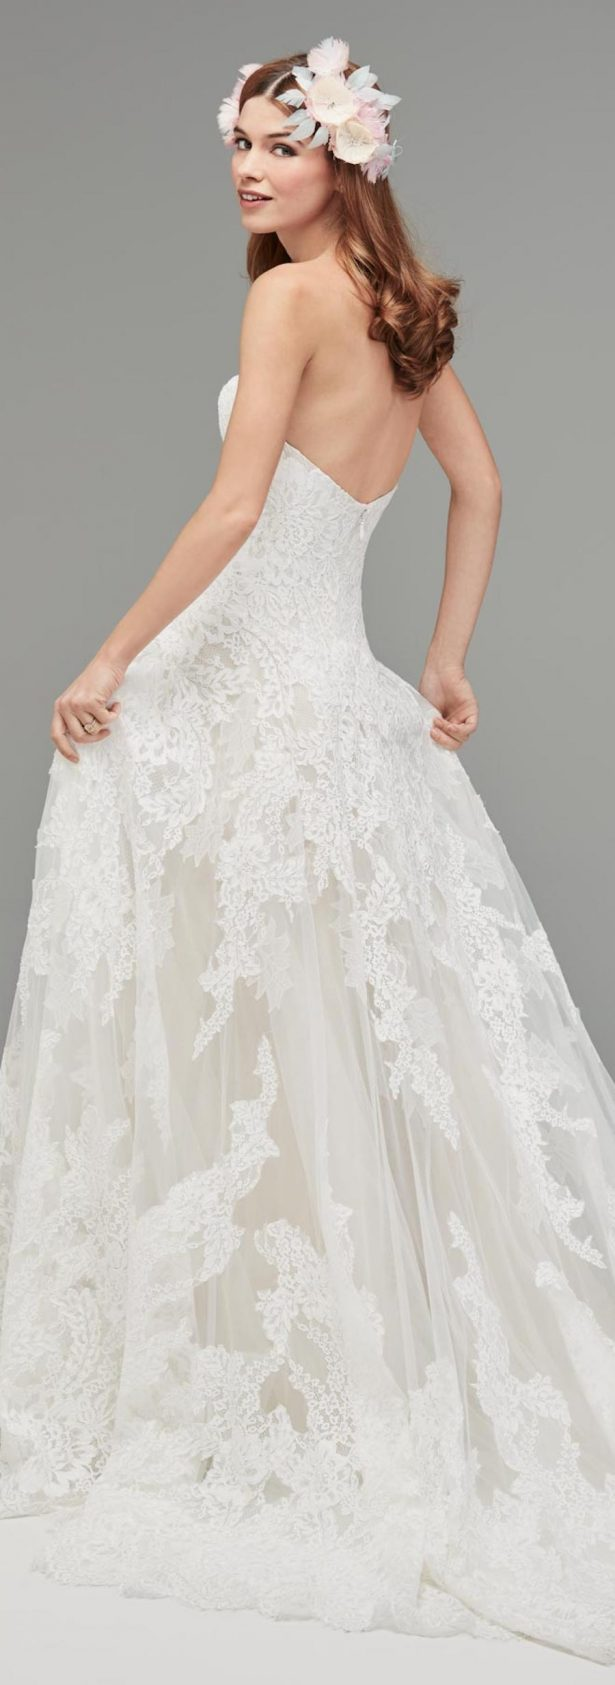 Wedding Dresses By Watters 89 Awesome  Watters Wedding Dresses